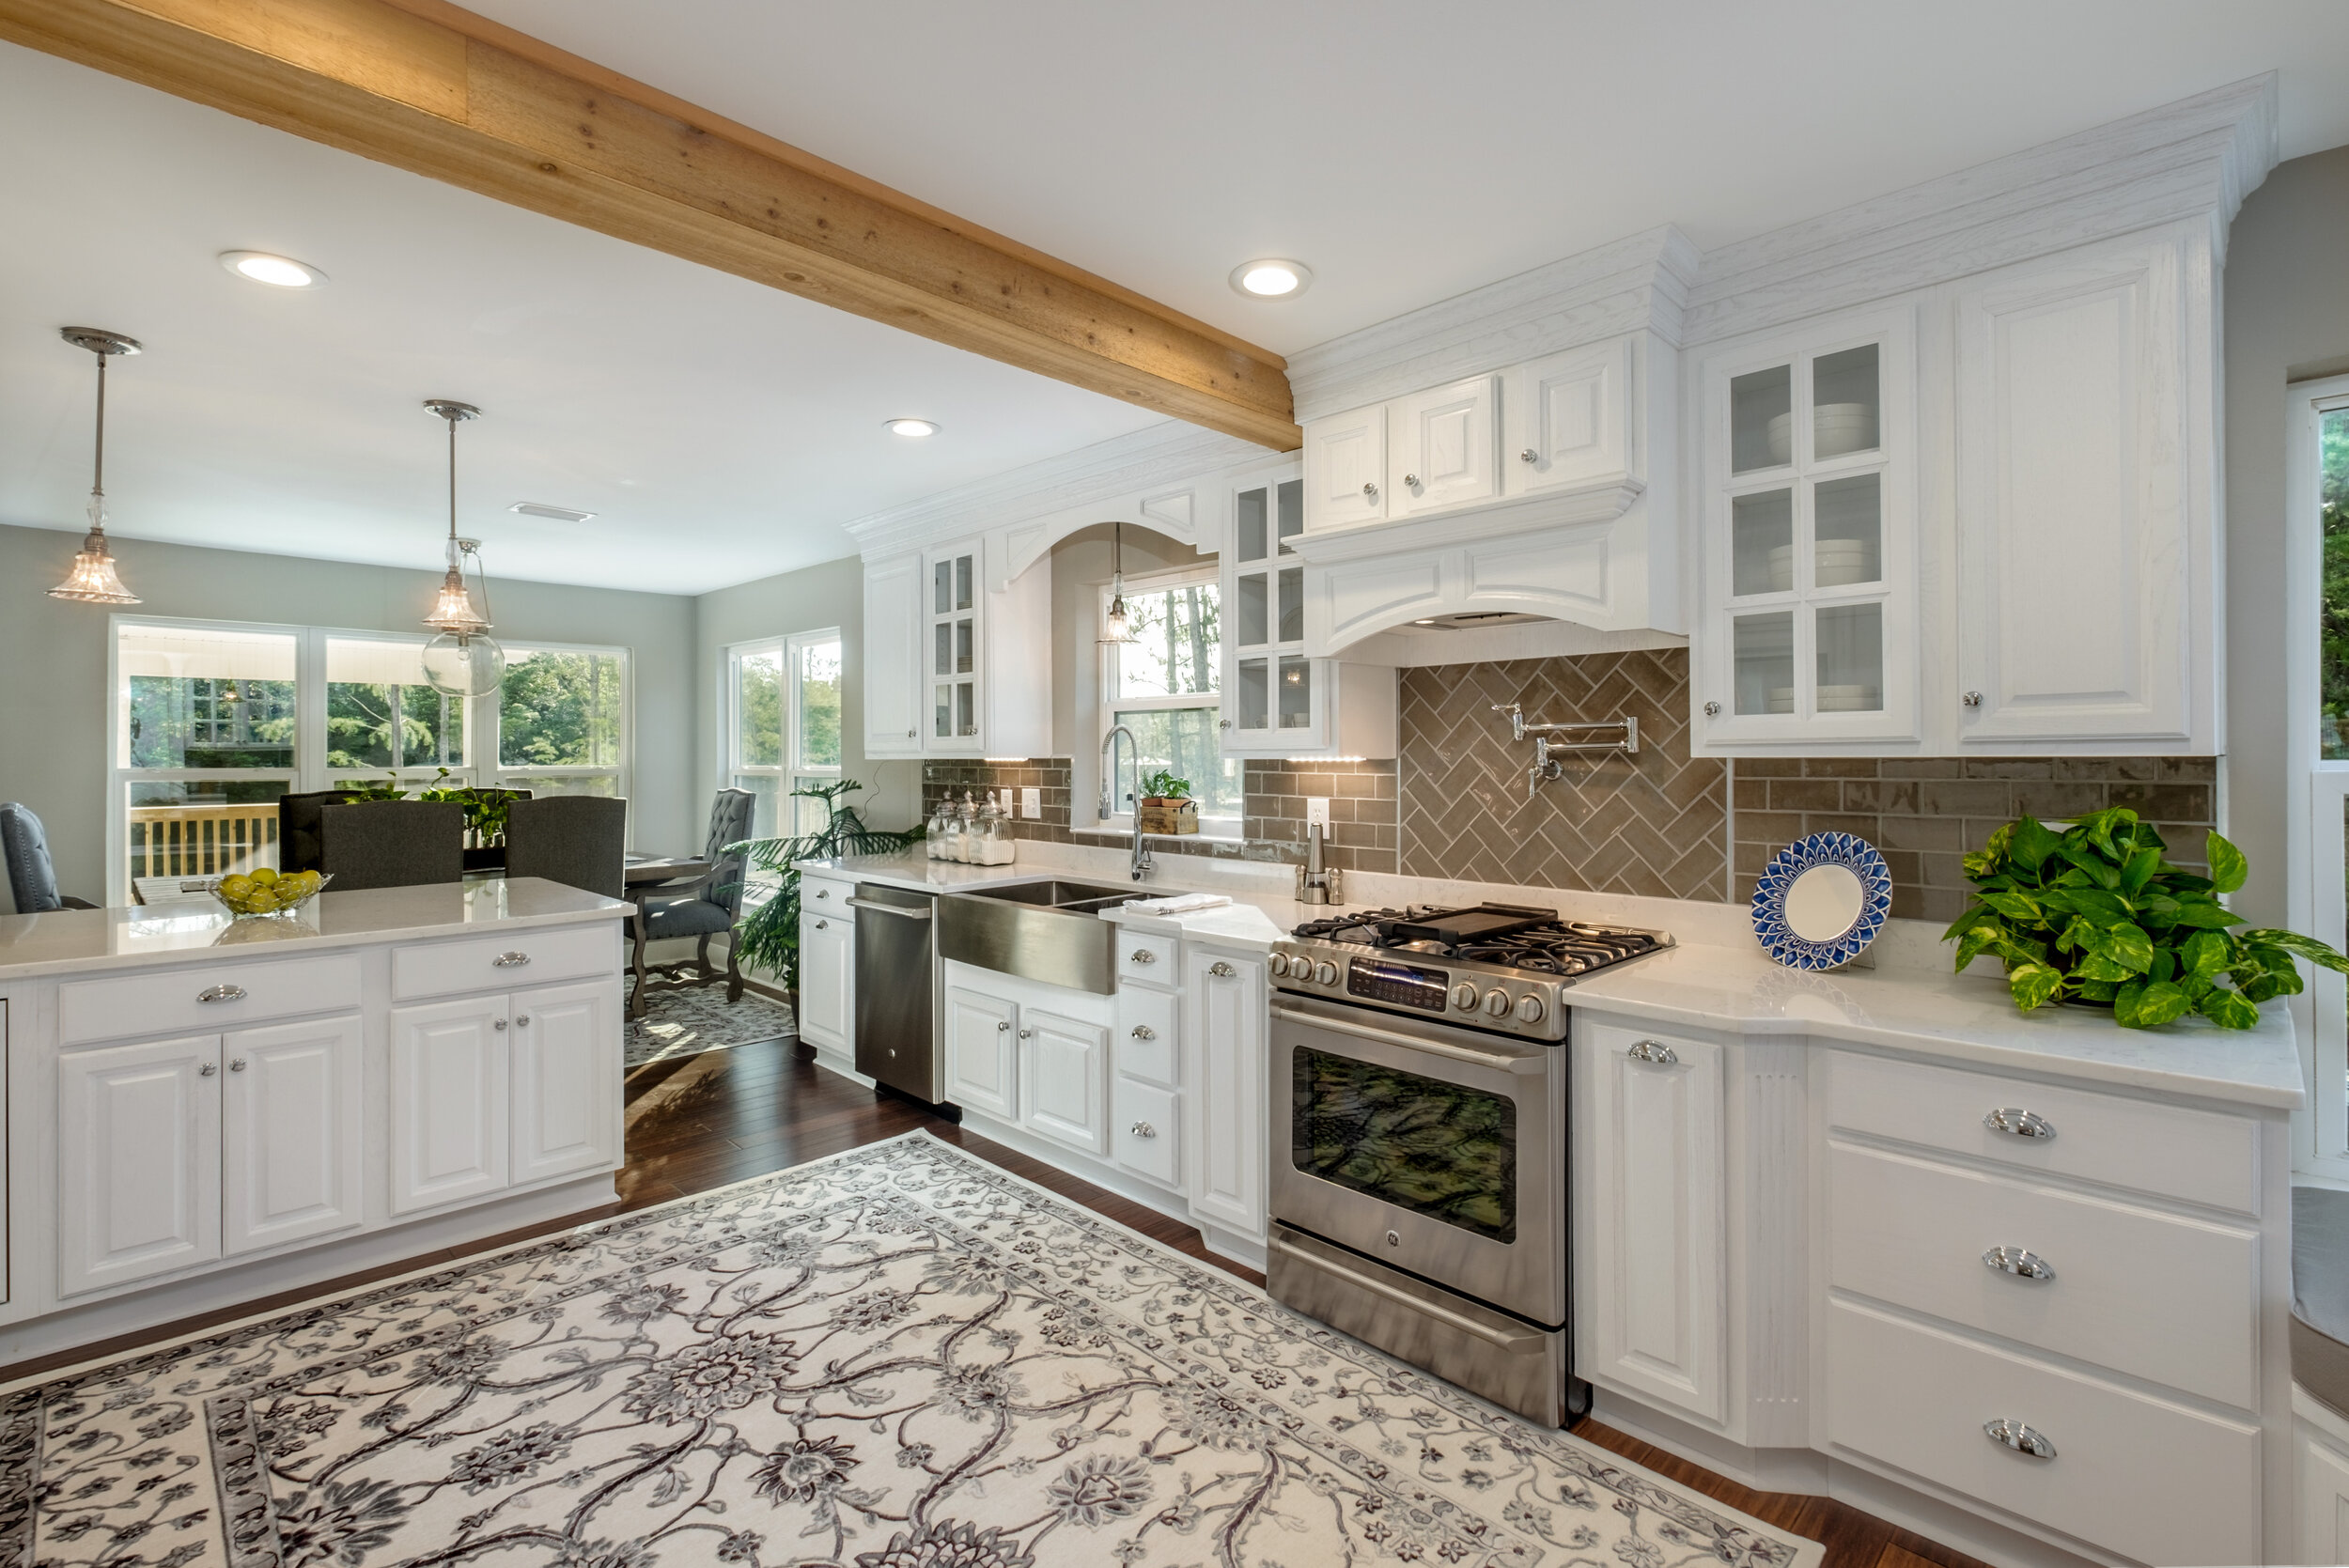 Cumberland oak white kitchen project in DeSoto, MS